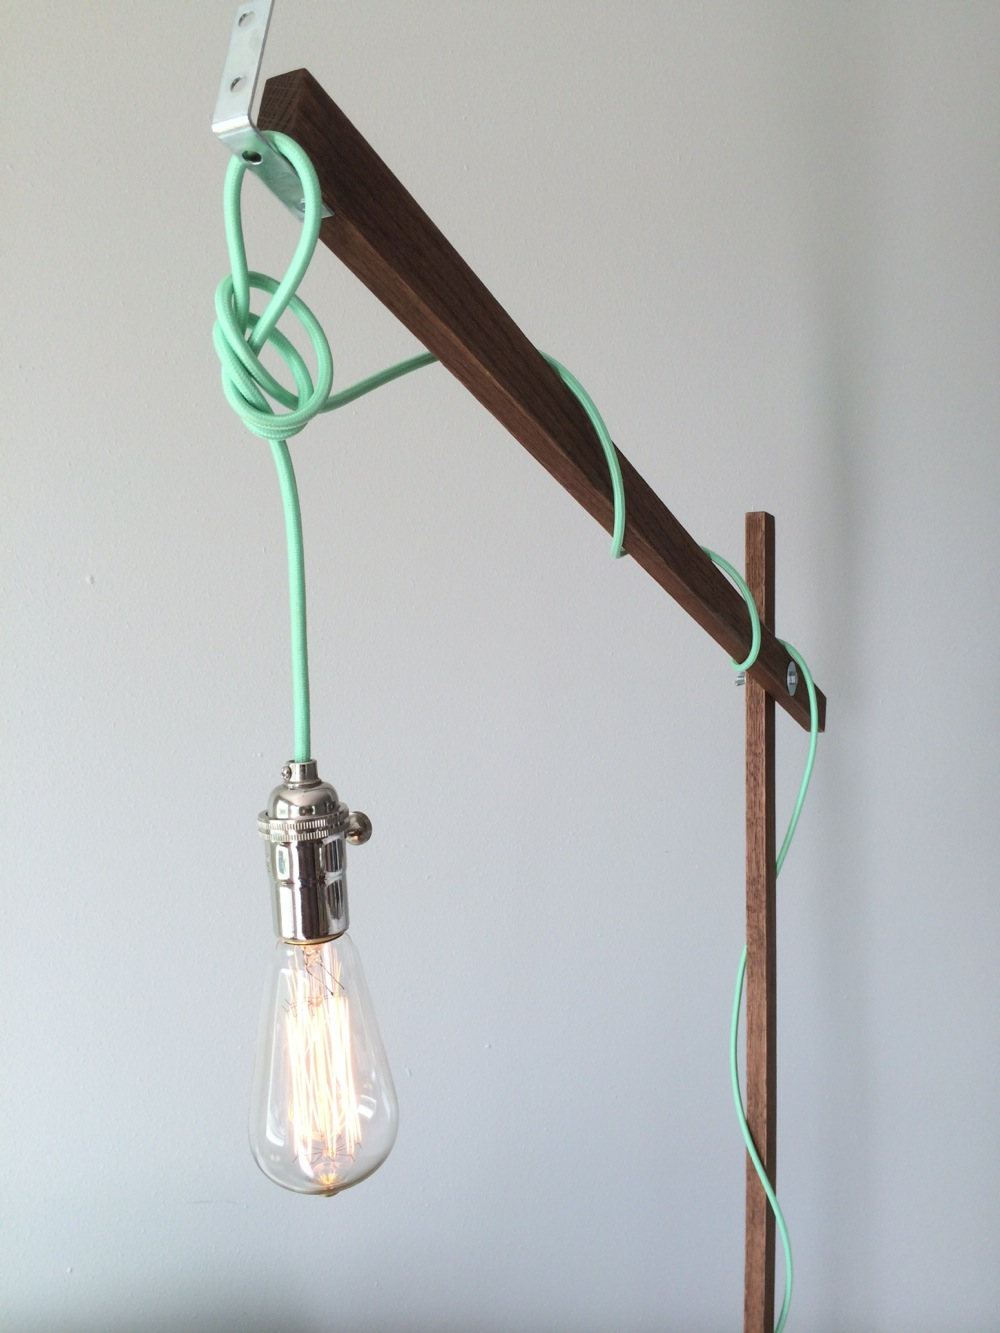 Light Up The Living Room With These 25 DIY Floor Lamps! for Homemade Floor Lamps  150ifm